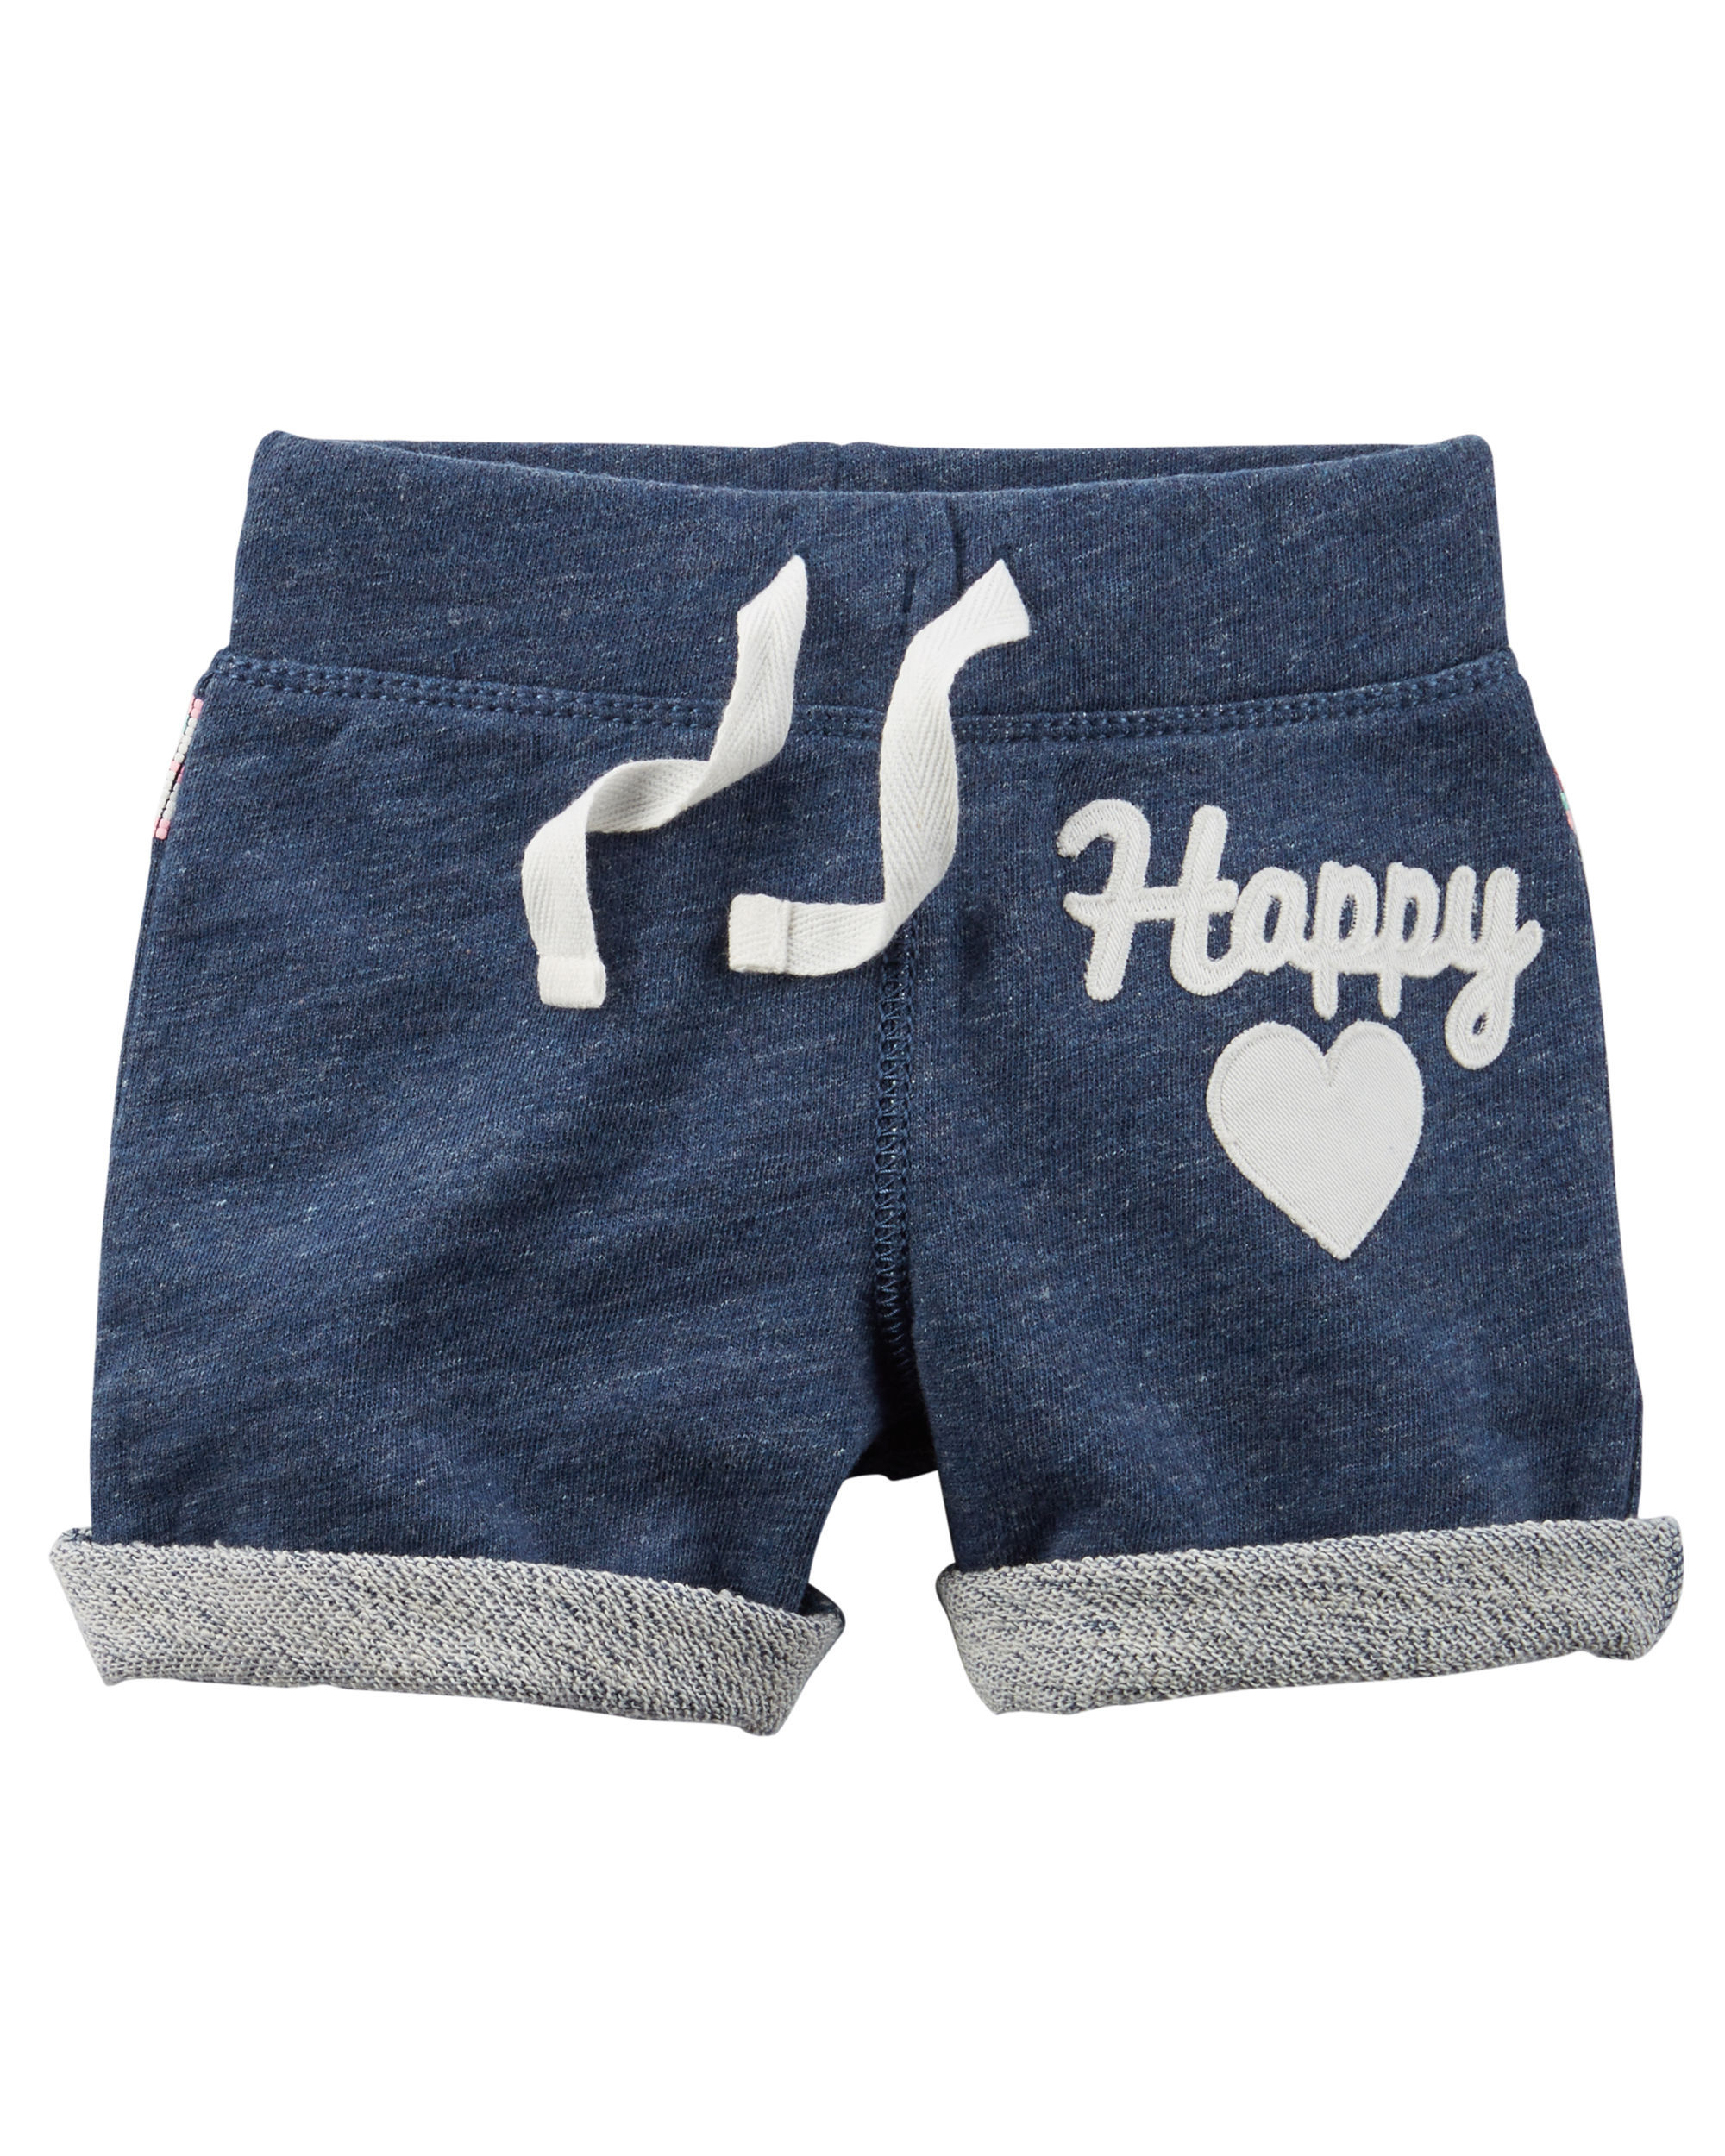 French Terry Shorts (Happy) - $8.00